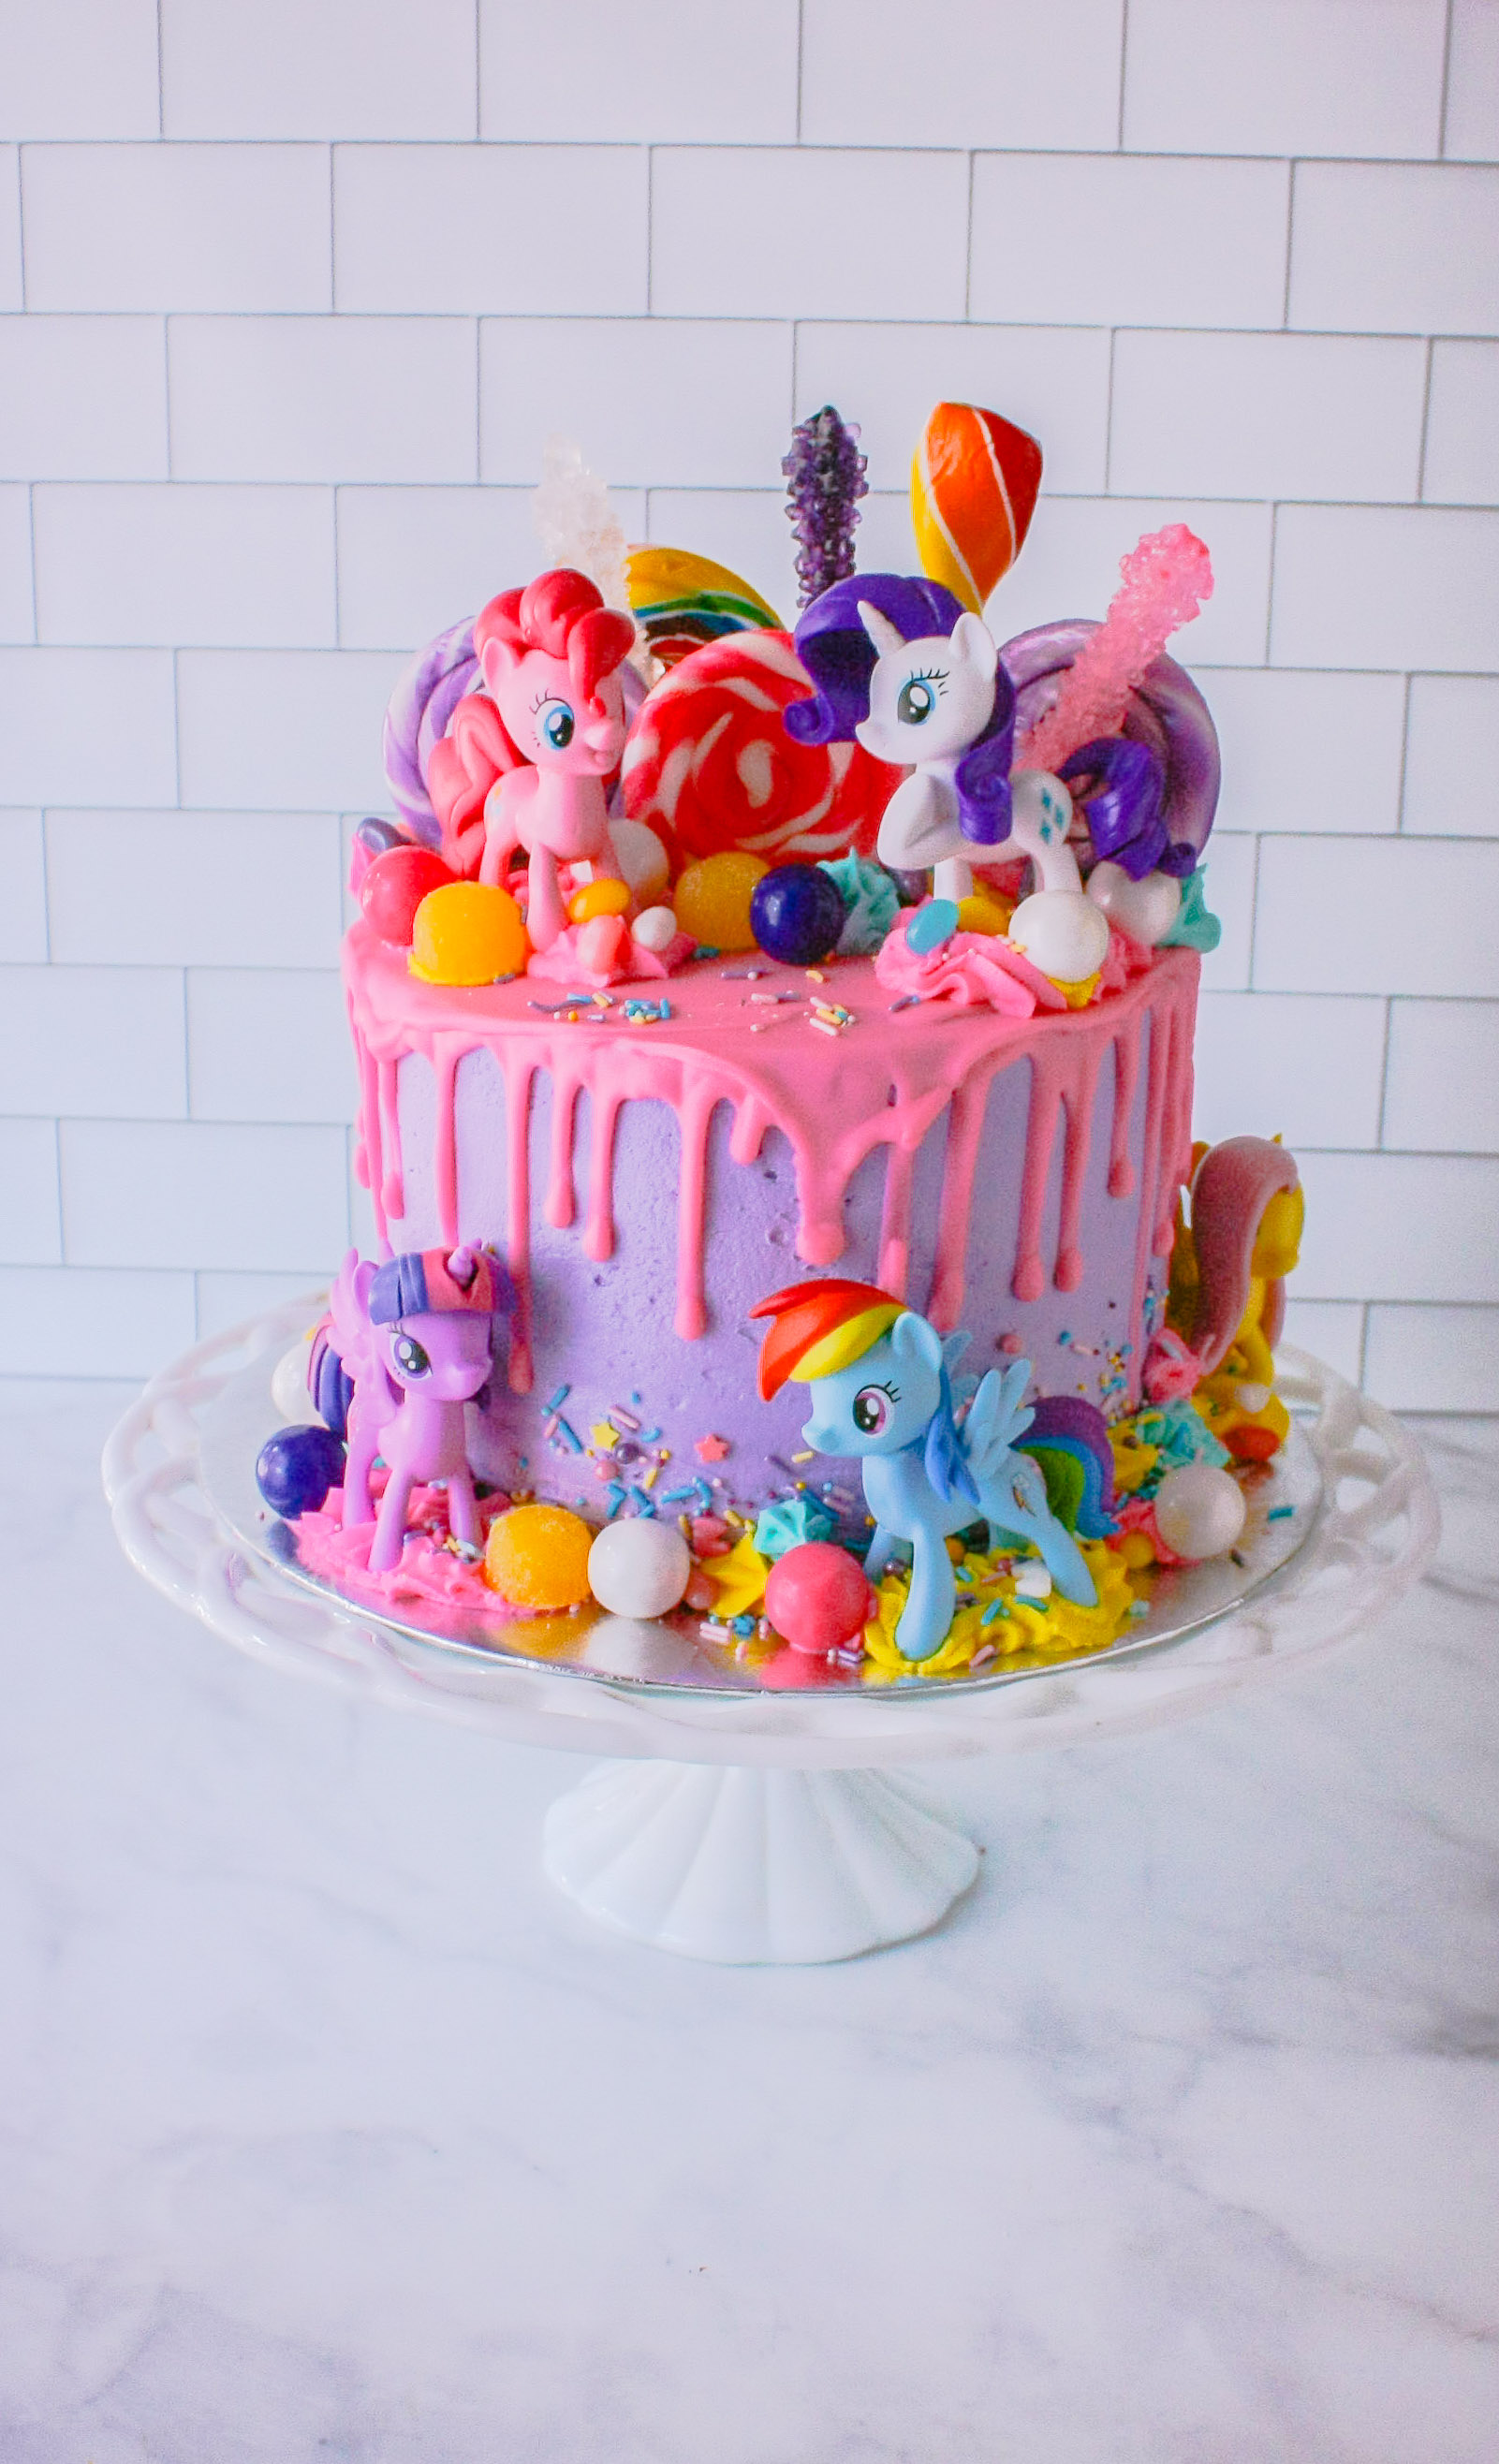 My Little Pony Birthday Cake.Vanilla Buttercream Frosting My Little Pony Cake